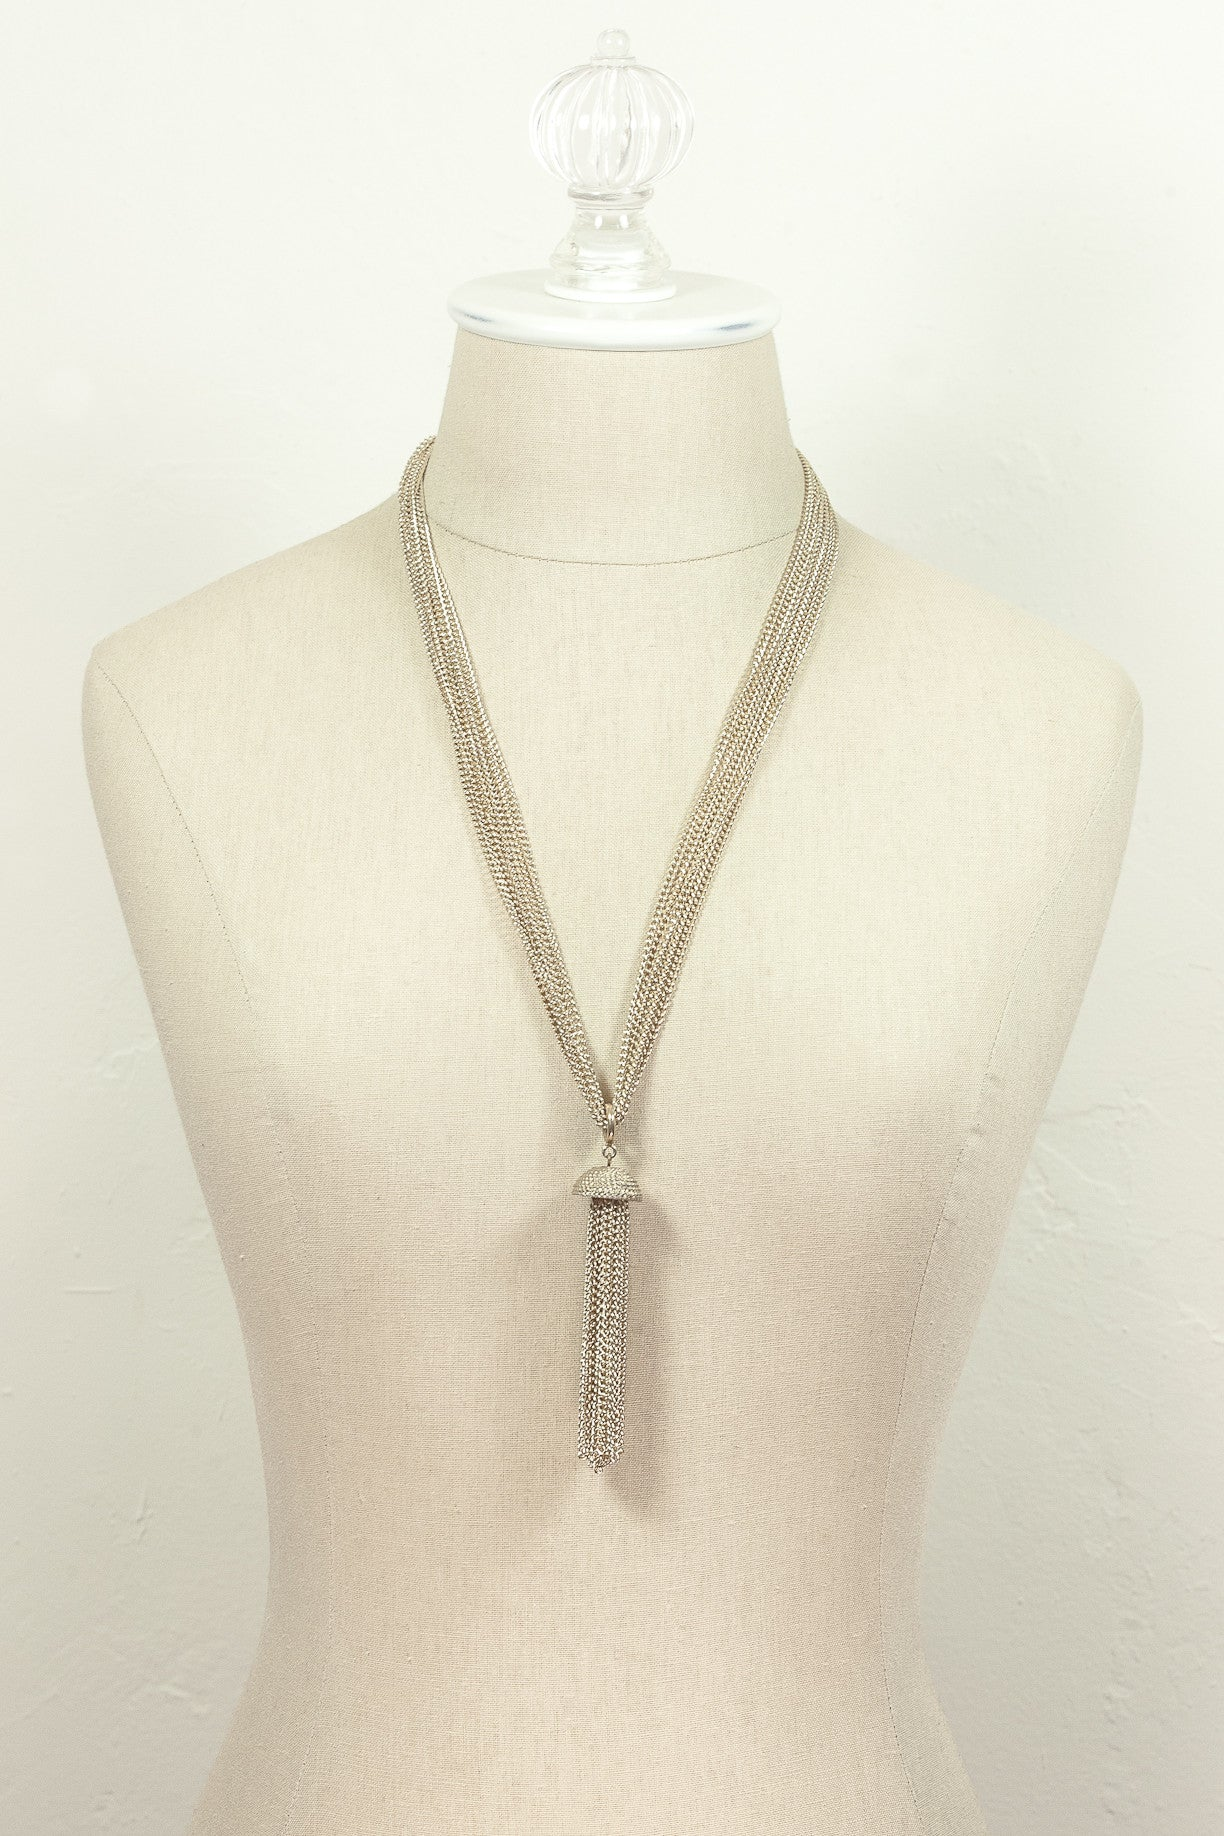 70's__Sarah Coventry__Gold Tassel Necklace